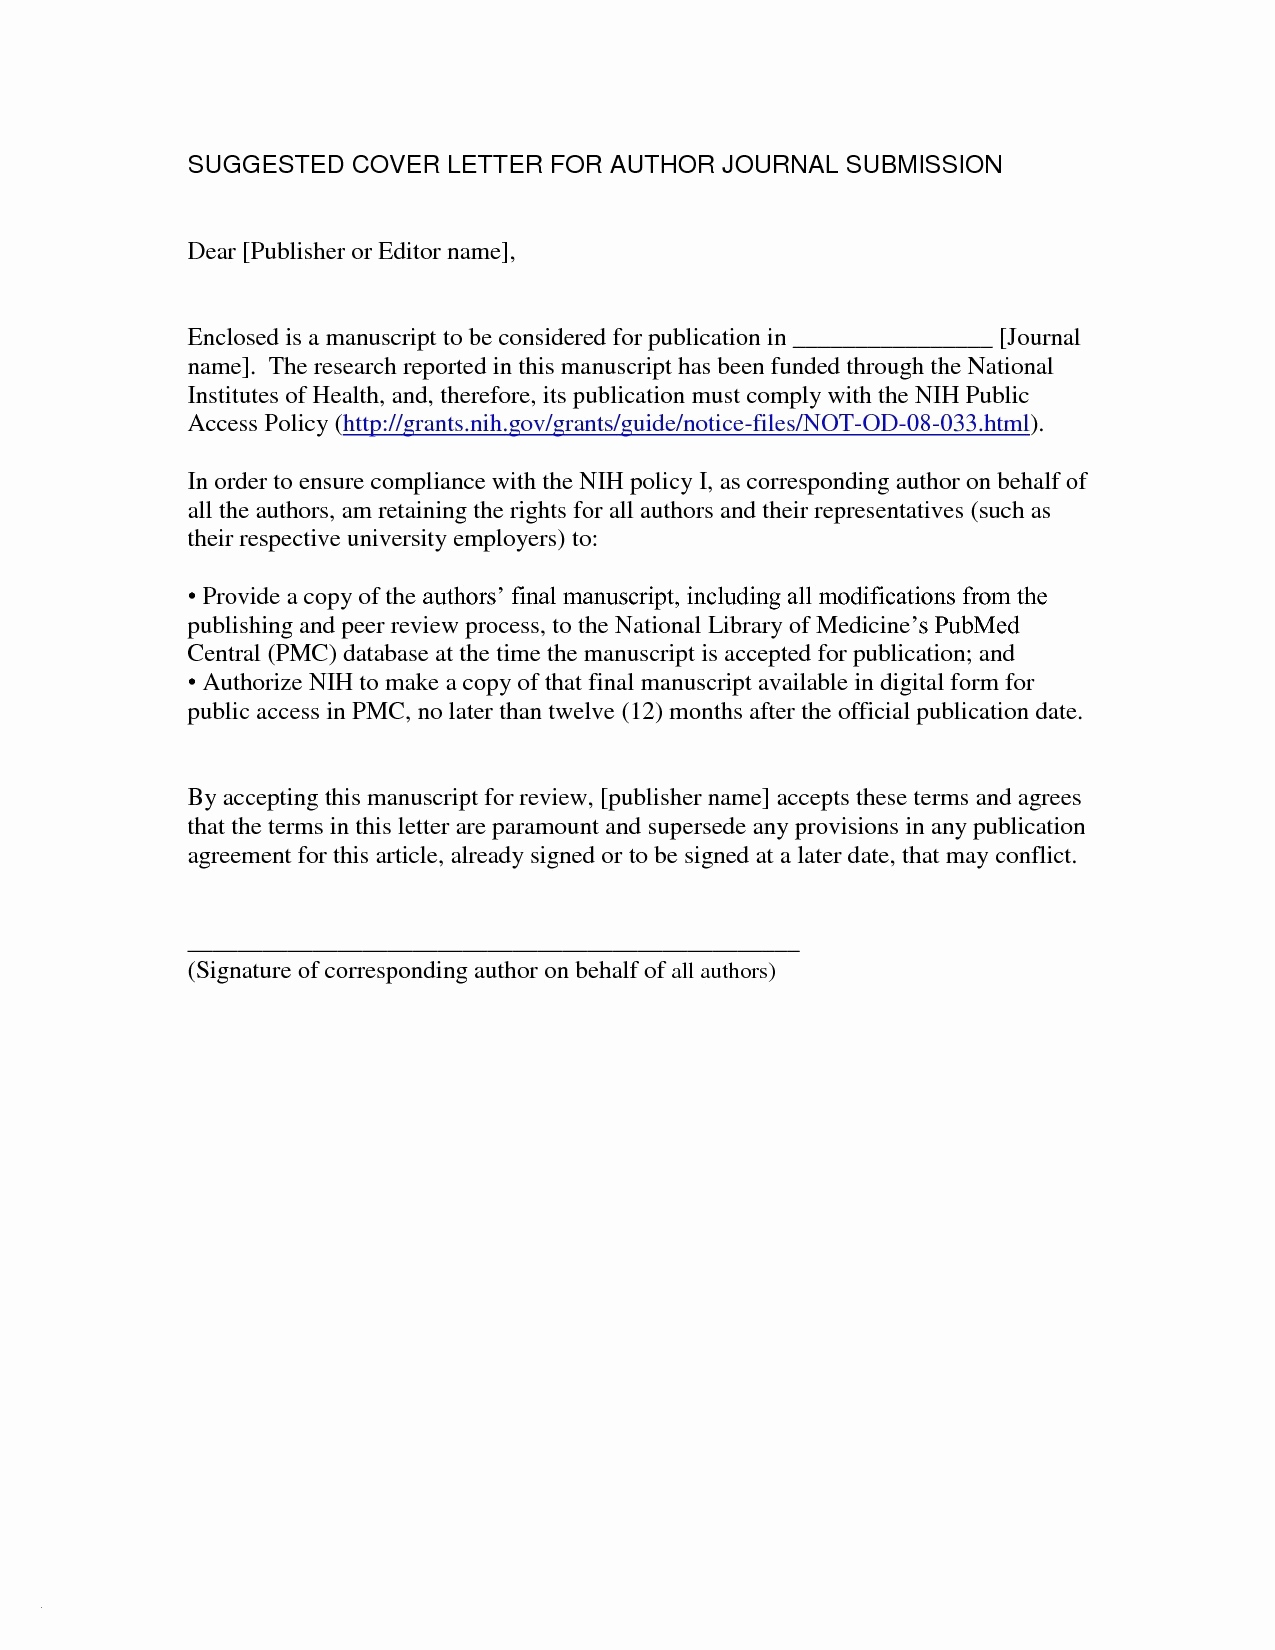 Phlebotomy Cover Letter Template - Medical assistant Phlebotomist Resume Free Sample Resume for